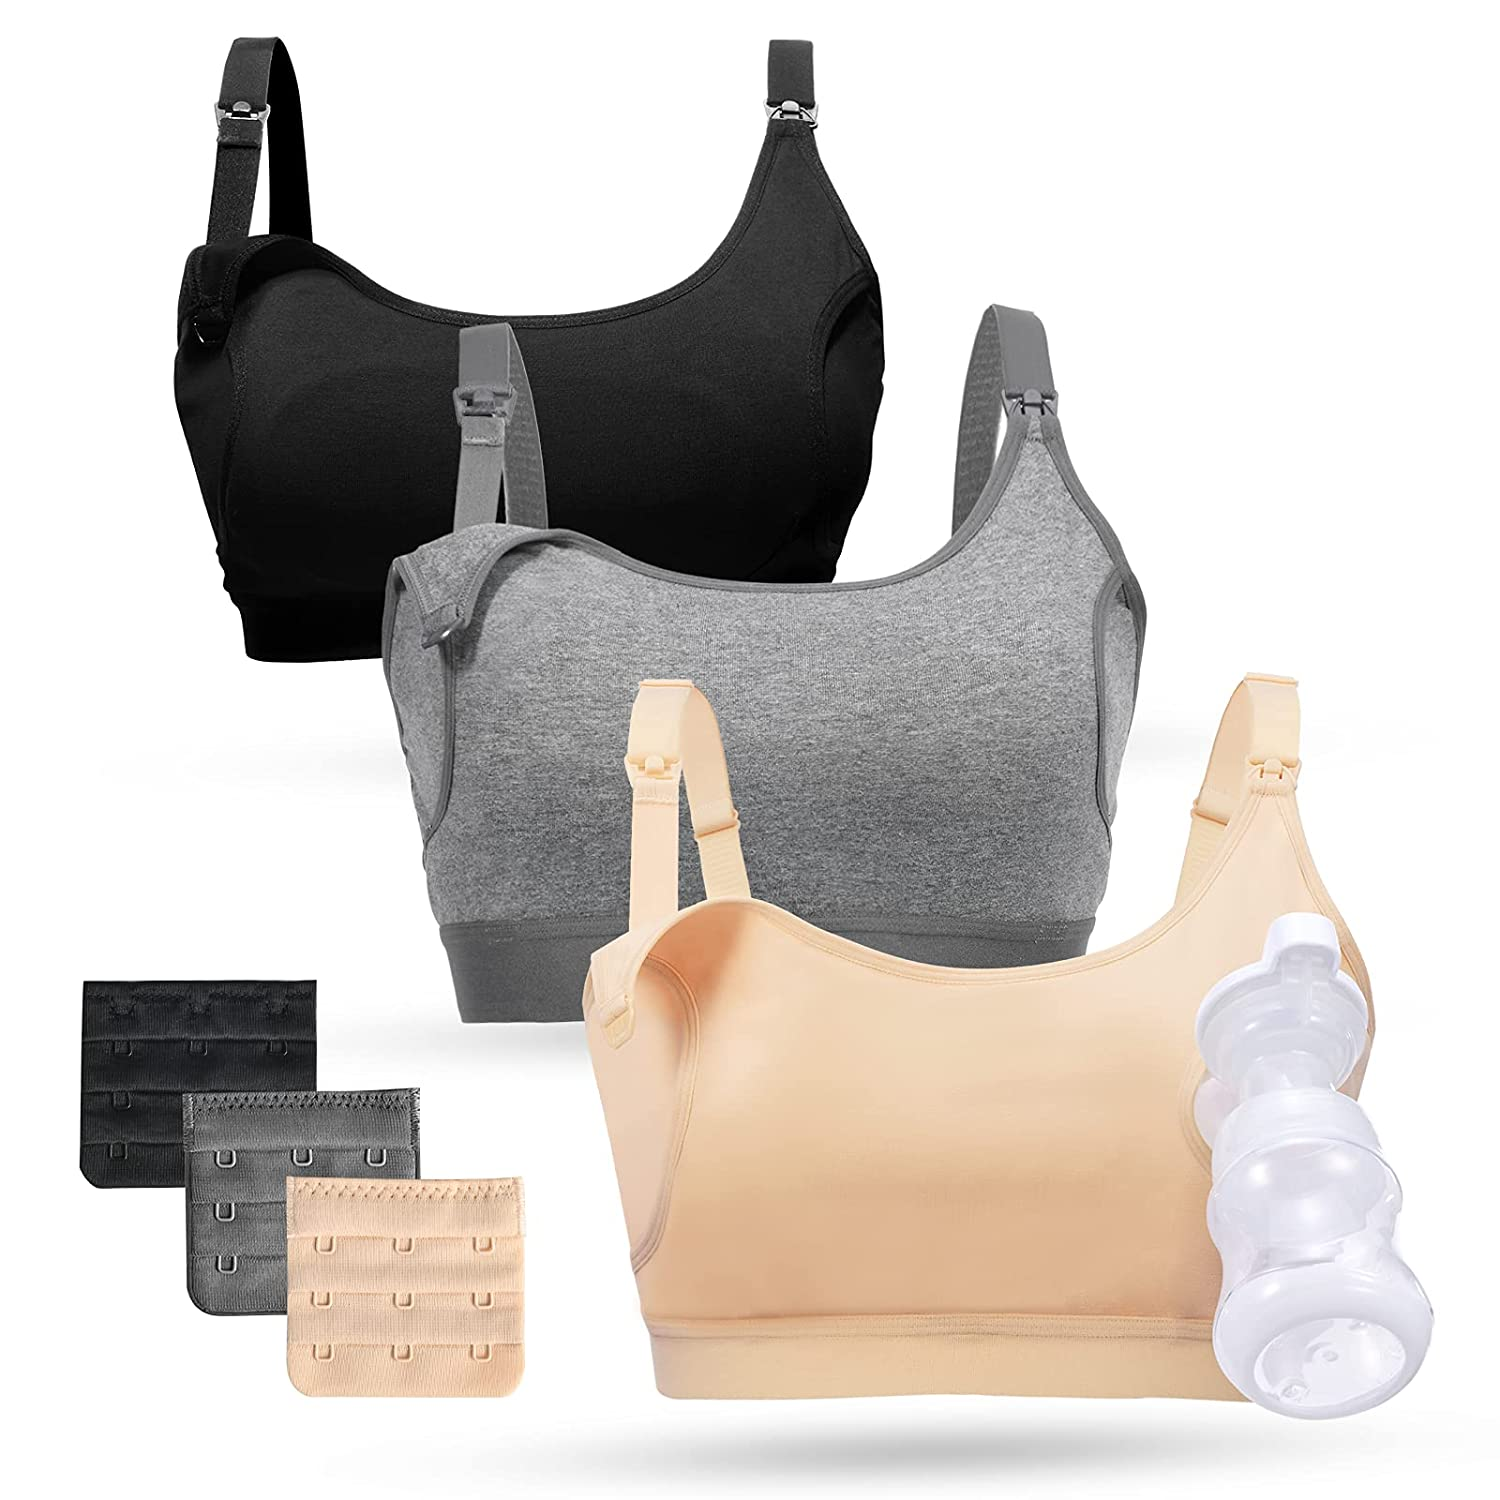 Momcozy Year-end gift Pumping Bra Hands Free Bras Pack Women Max 56% OFF 3 for Su